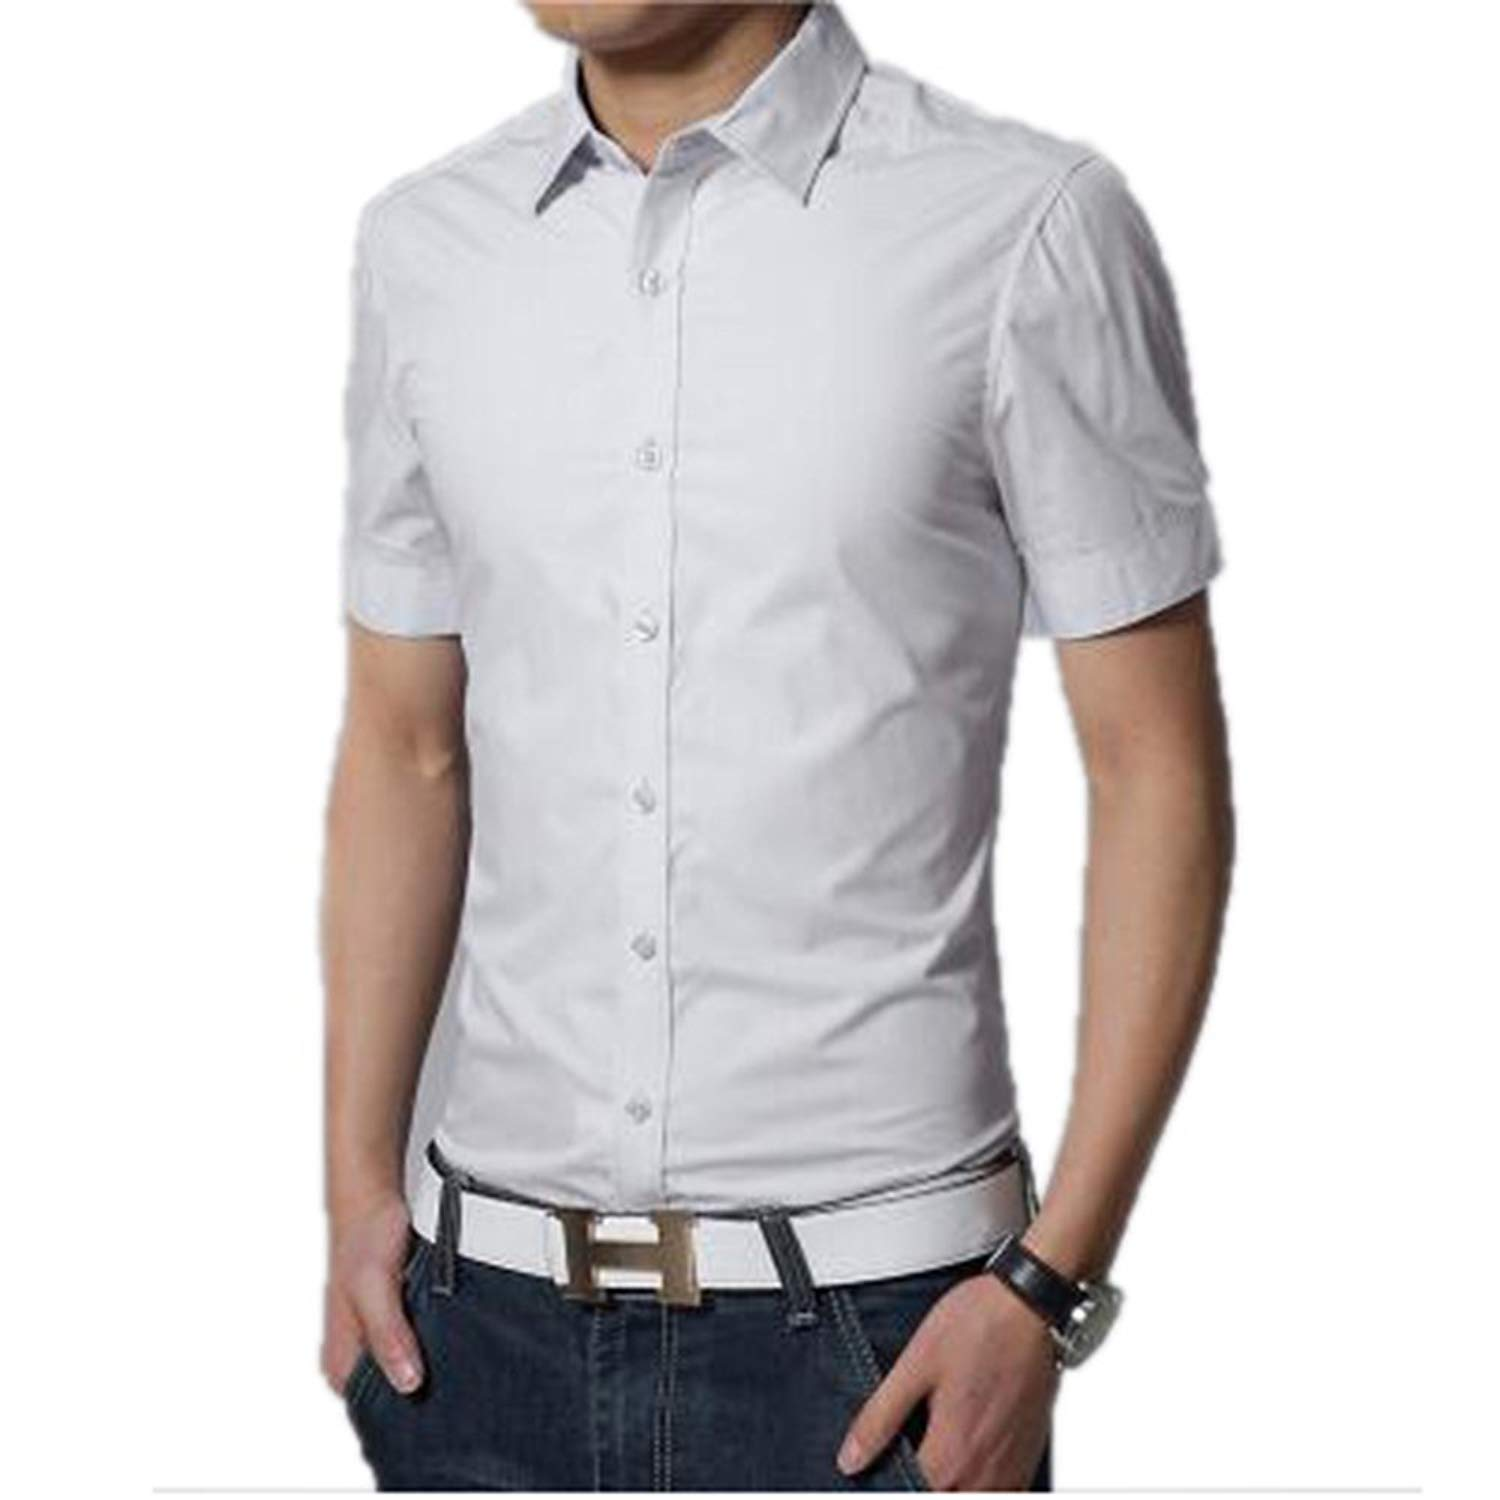 5c84694889f0 Men Short Sleeves Solid Summer Shirts Button Down Shirt Collar Dress Shirts